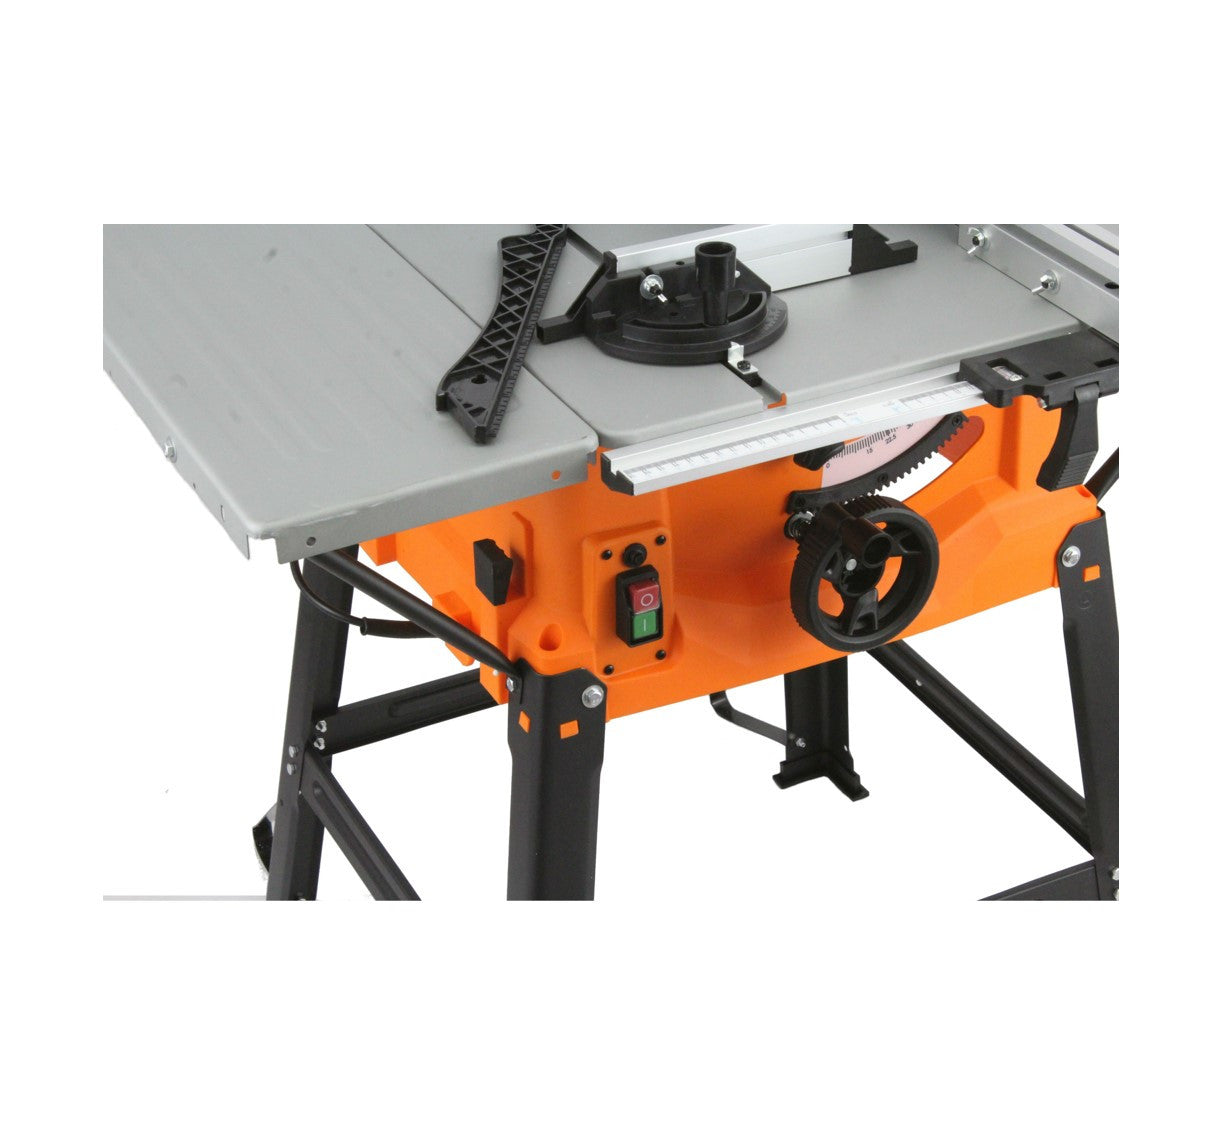 Djm Direct 10 254mm Woodworking Table Work Saw With Stand 240v